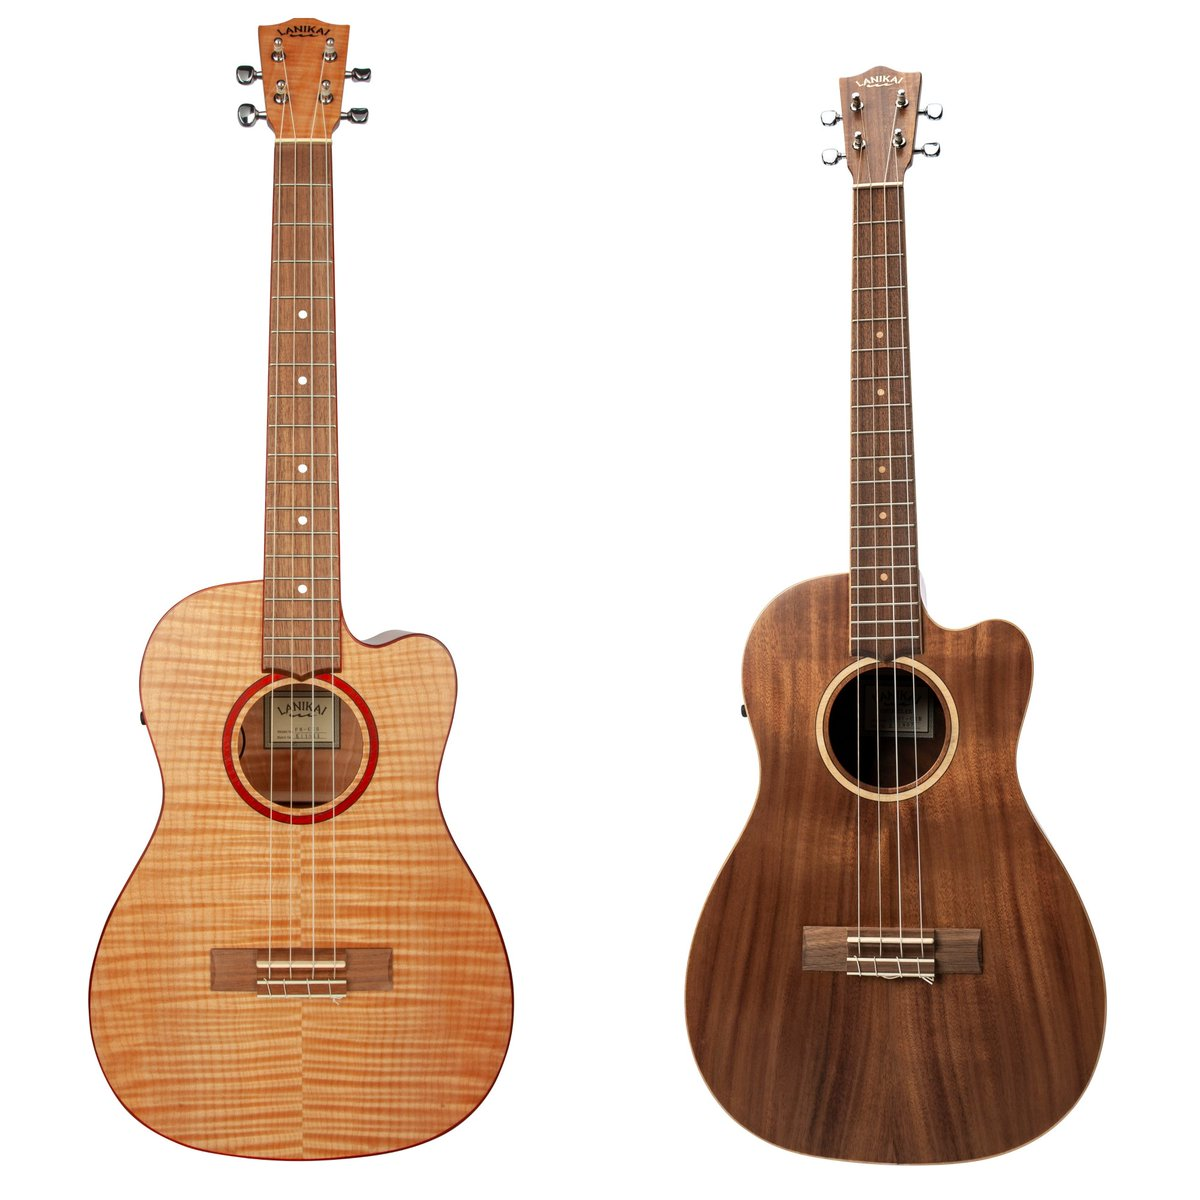 At NAMM we released 2 NEW Electric Cutaway Baritone Ukuleles in Flame Maple and Acacia Solid Top.  Have you ever played a baritone ukulele? Let us know! See all of our 2019 releases at:  http:// ow.ly/aZ6450kIMGq      #lanikaiukulele #ukulele #baritoneukulele <br>http://pic.twitter.com/zINeBIHar1